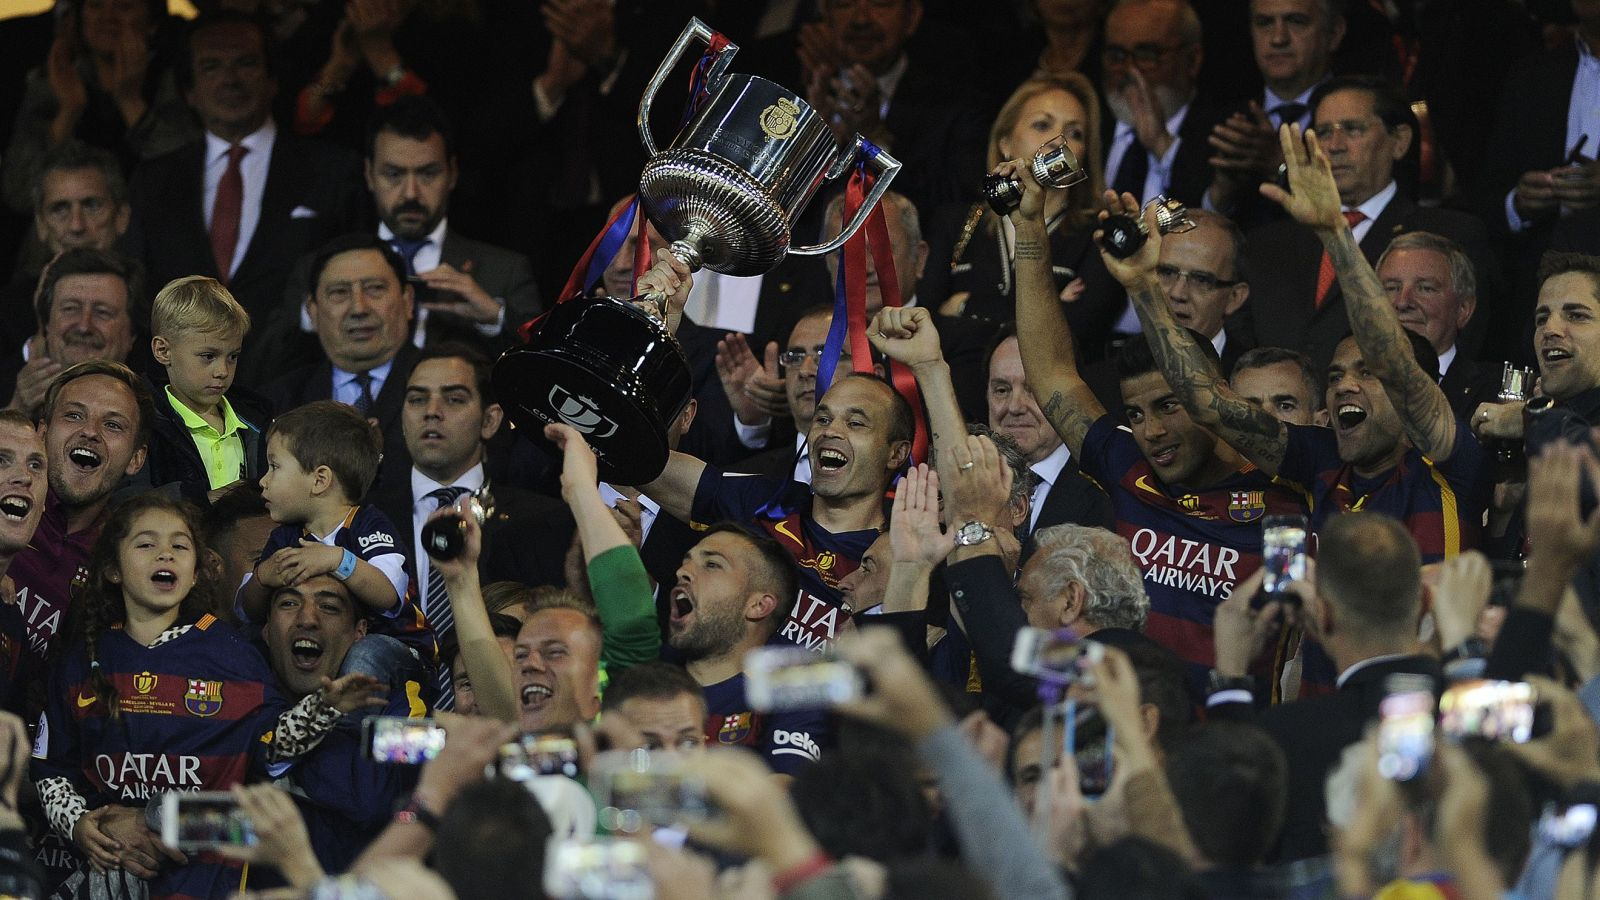 Enrique hails Barca's double-double after Copa del Rey triumph